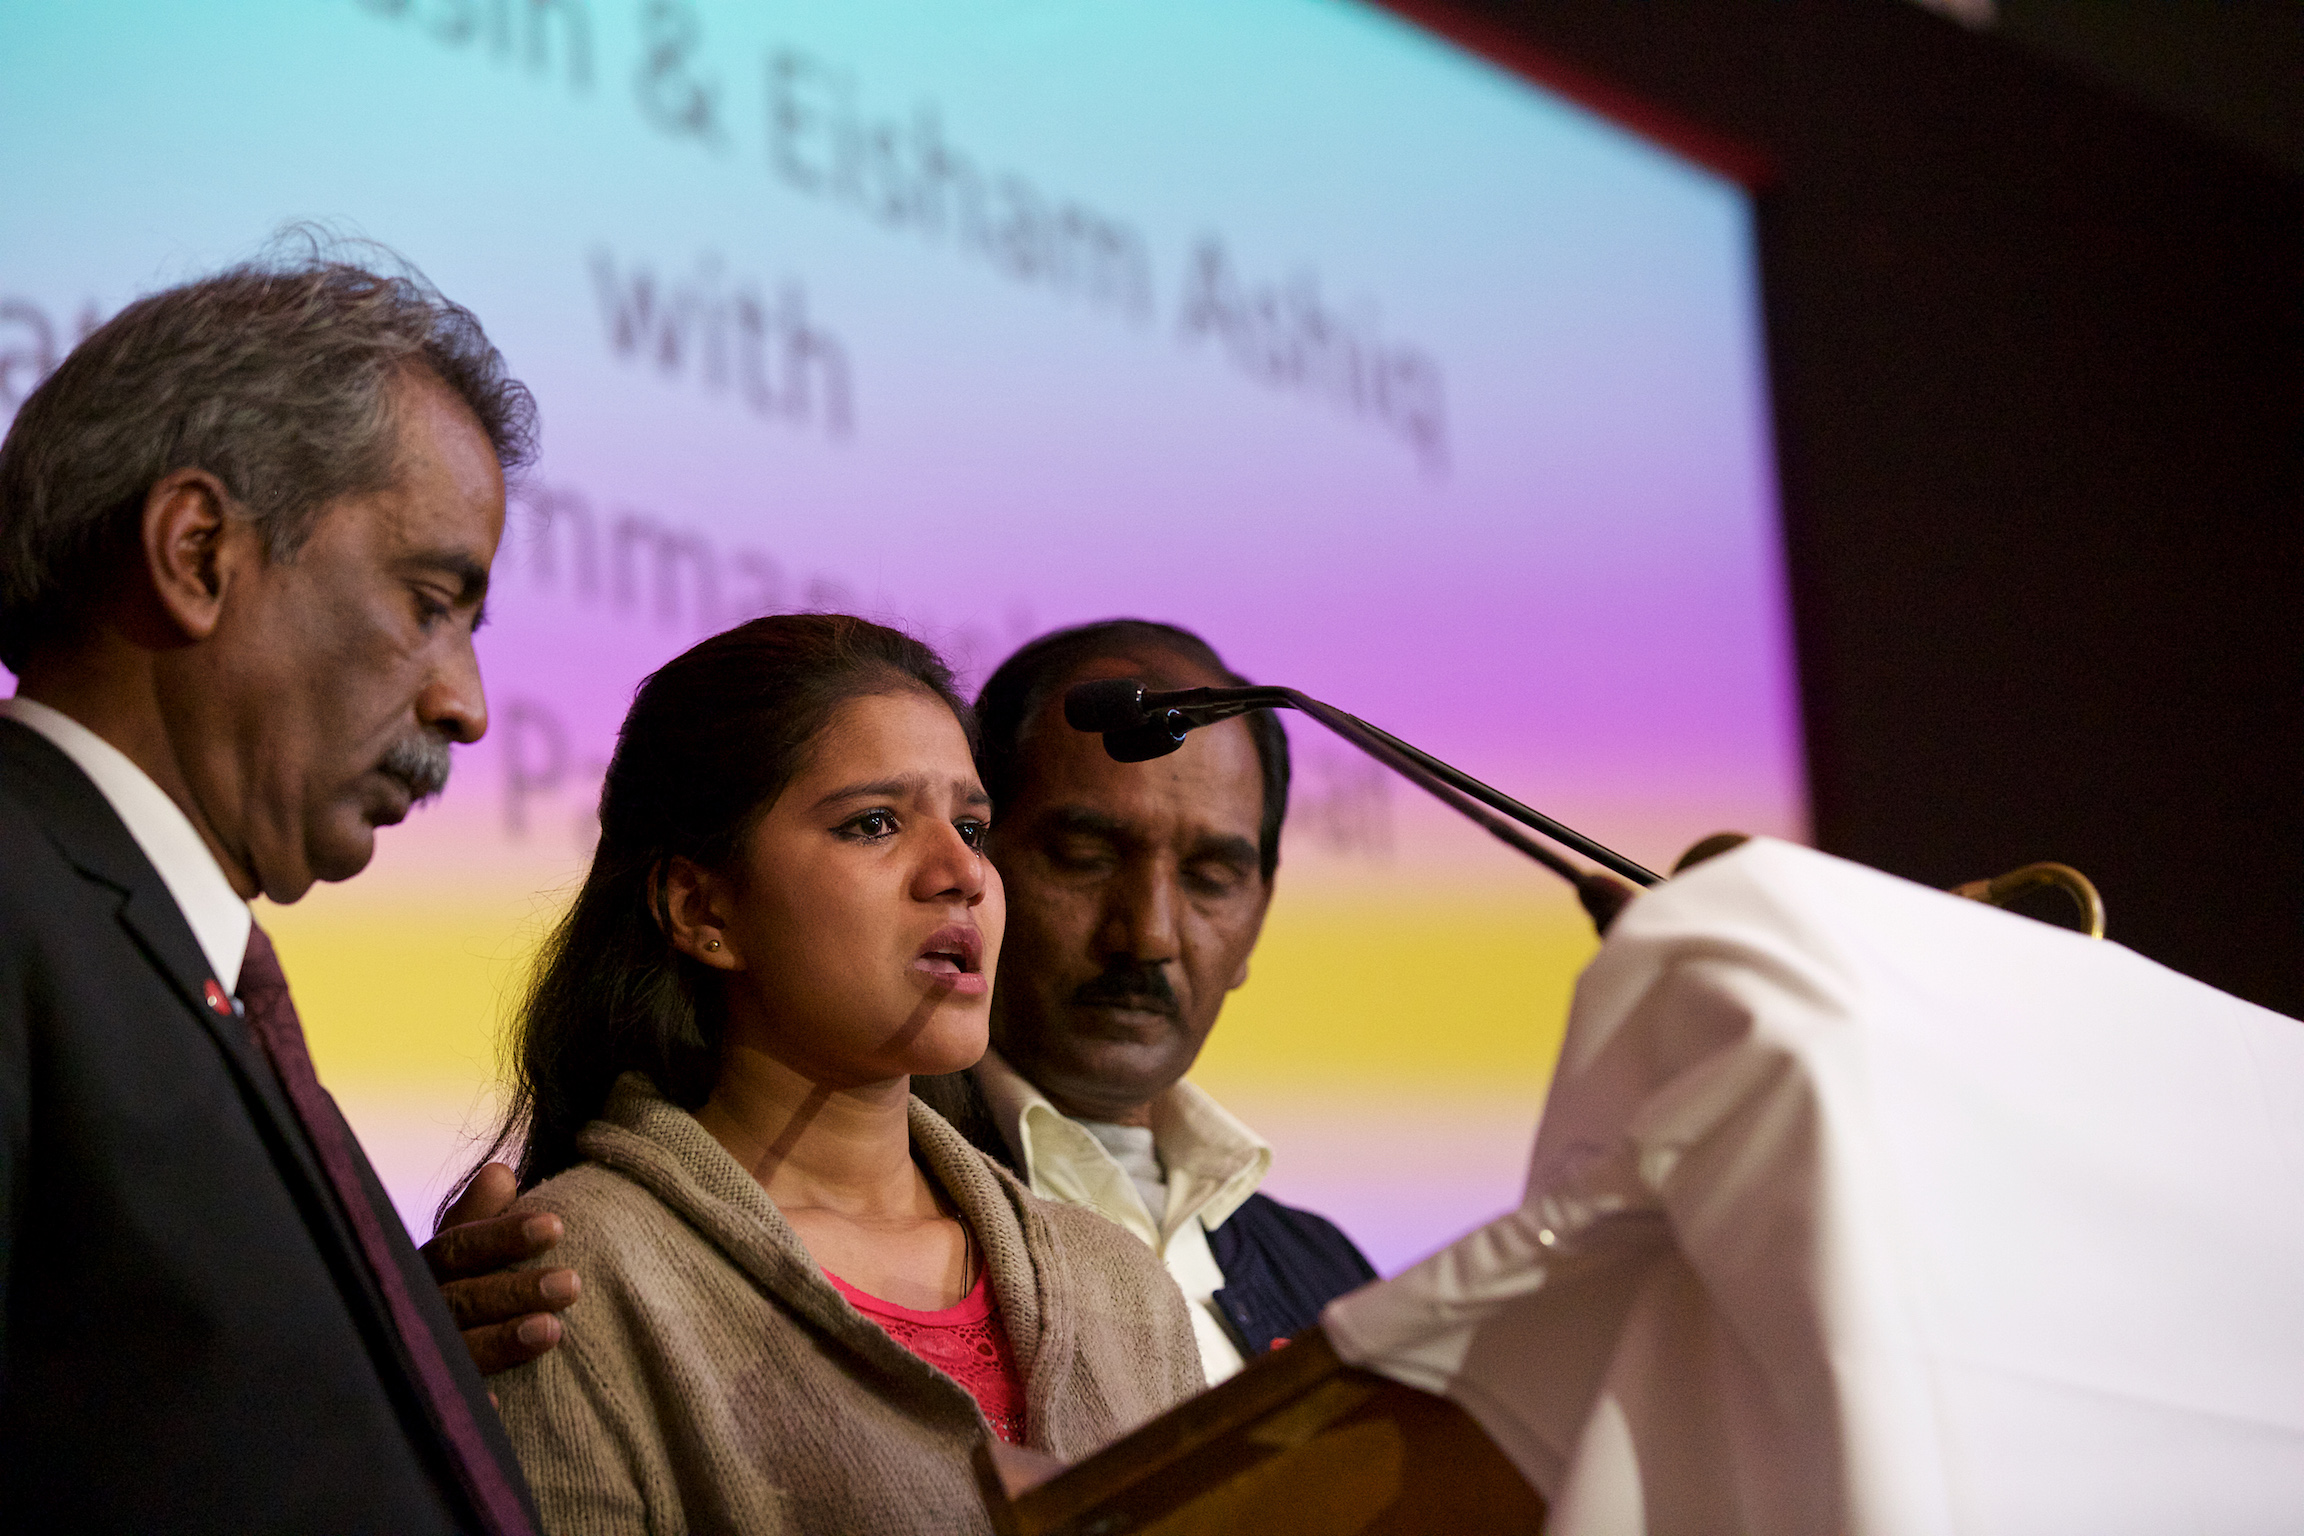 Asia Bibi's daughter Eisham Ashiq spoke at ACN's Annual event in Westminster Cathedral Hall (© Weenson Oopicture-u.net)